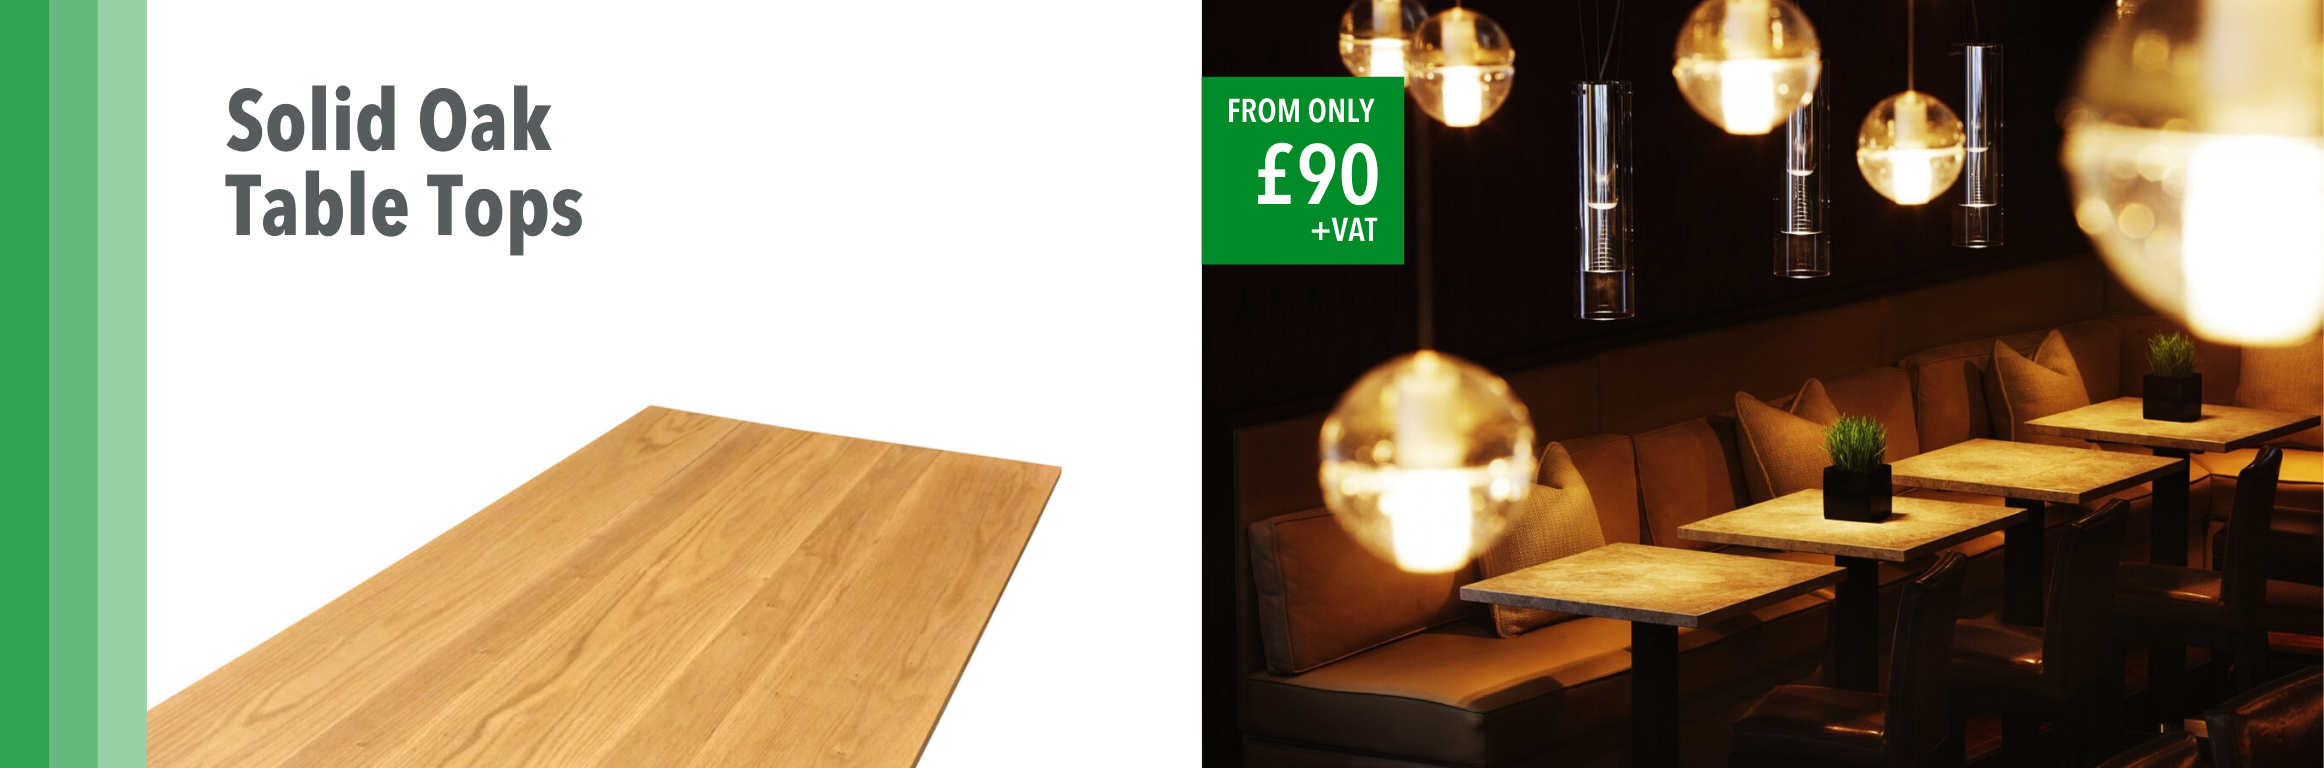 Solid Oak Table Tops